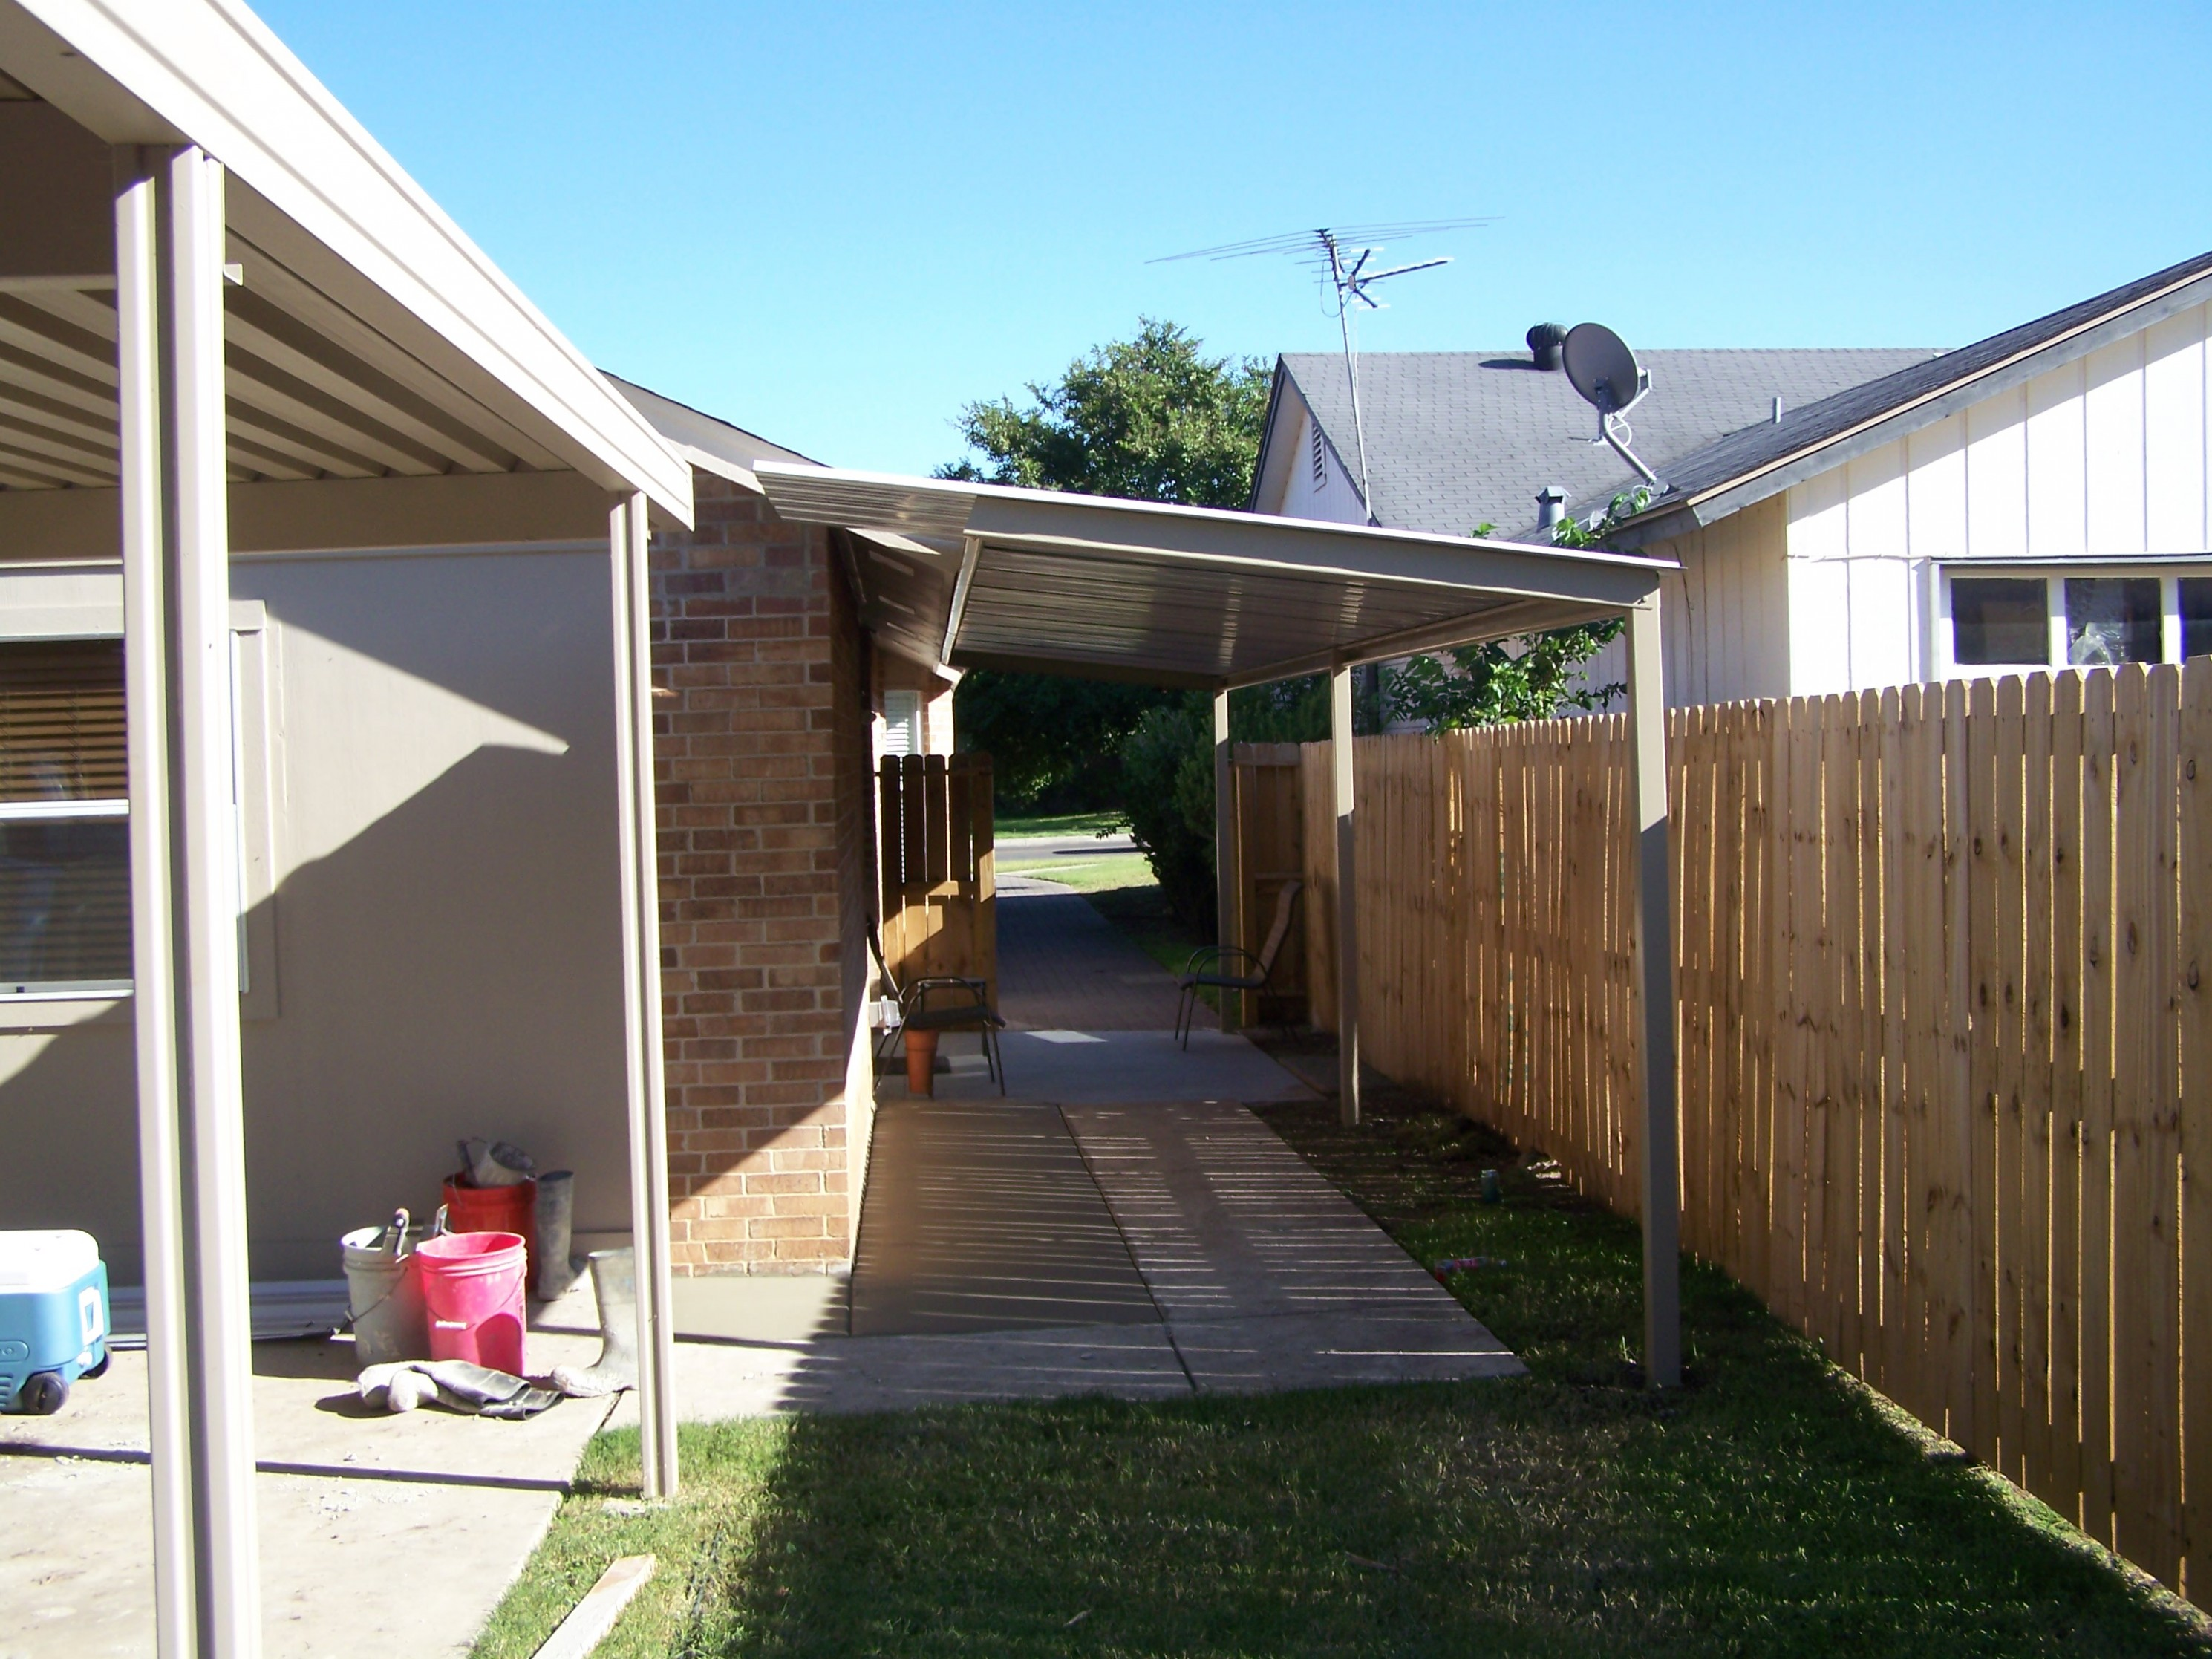 Eliminate Your Fears And Doubts About Carport Awnings Prices | carport awnings prices